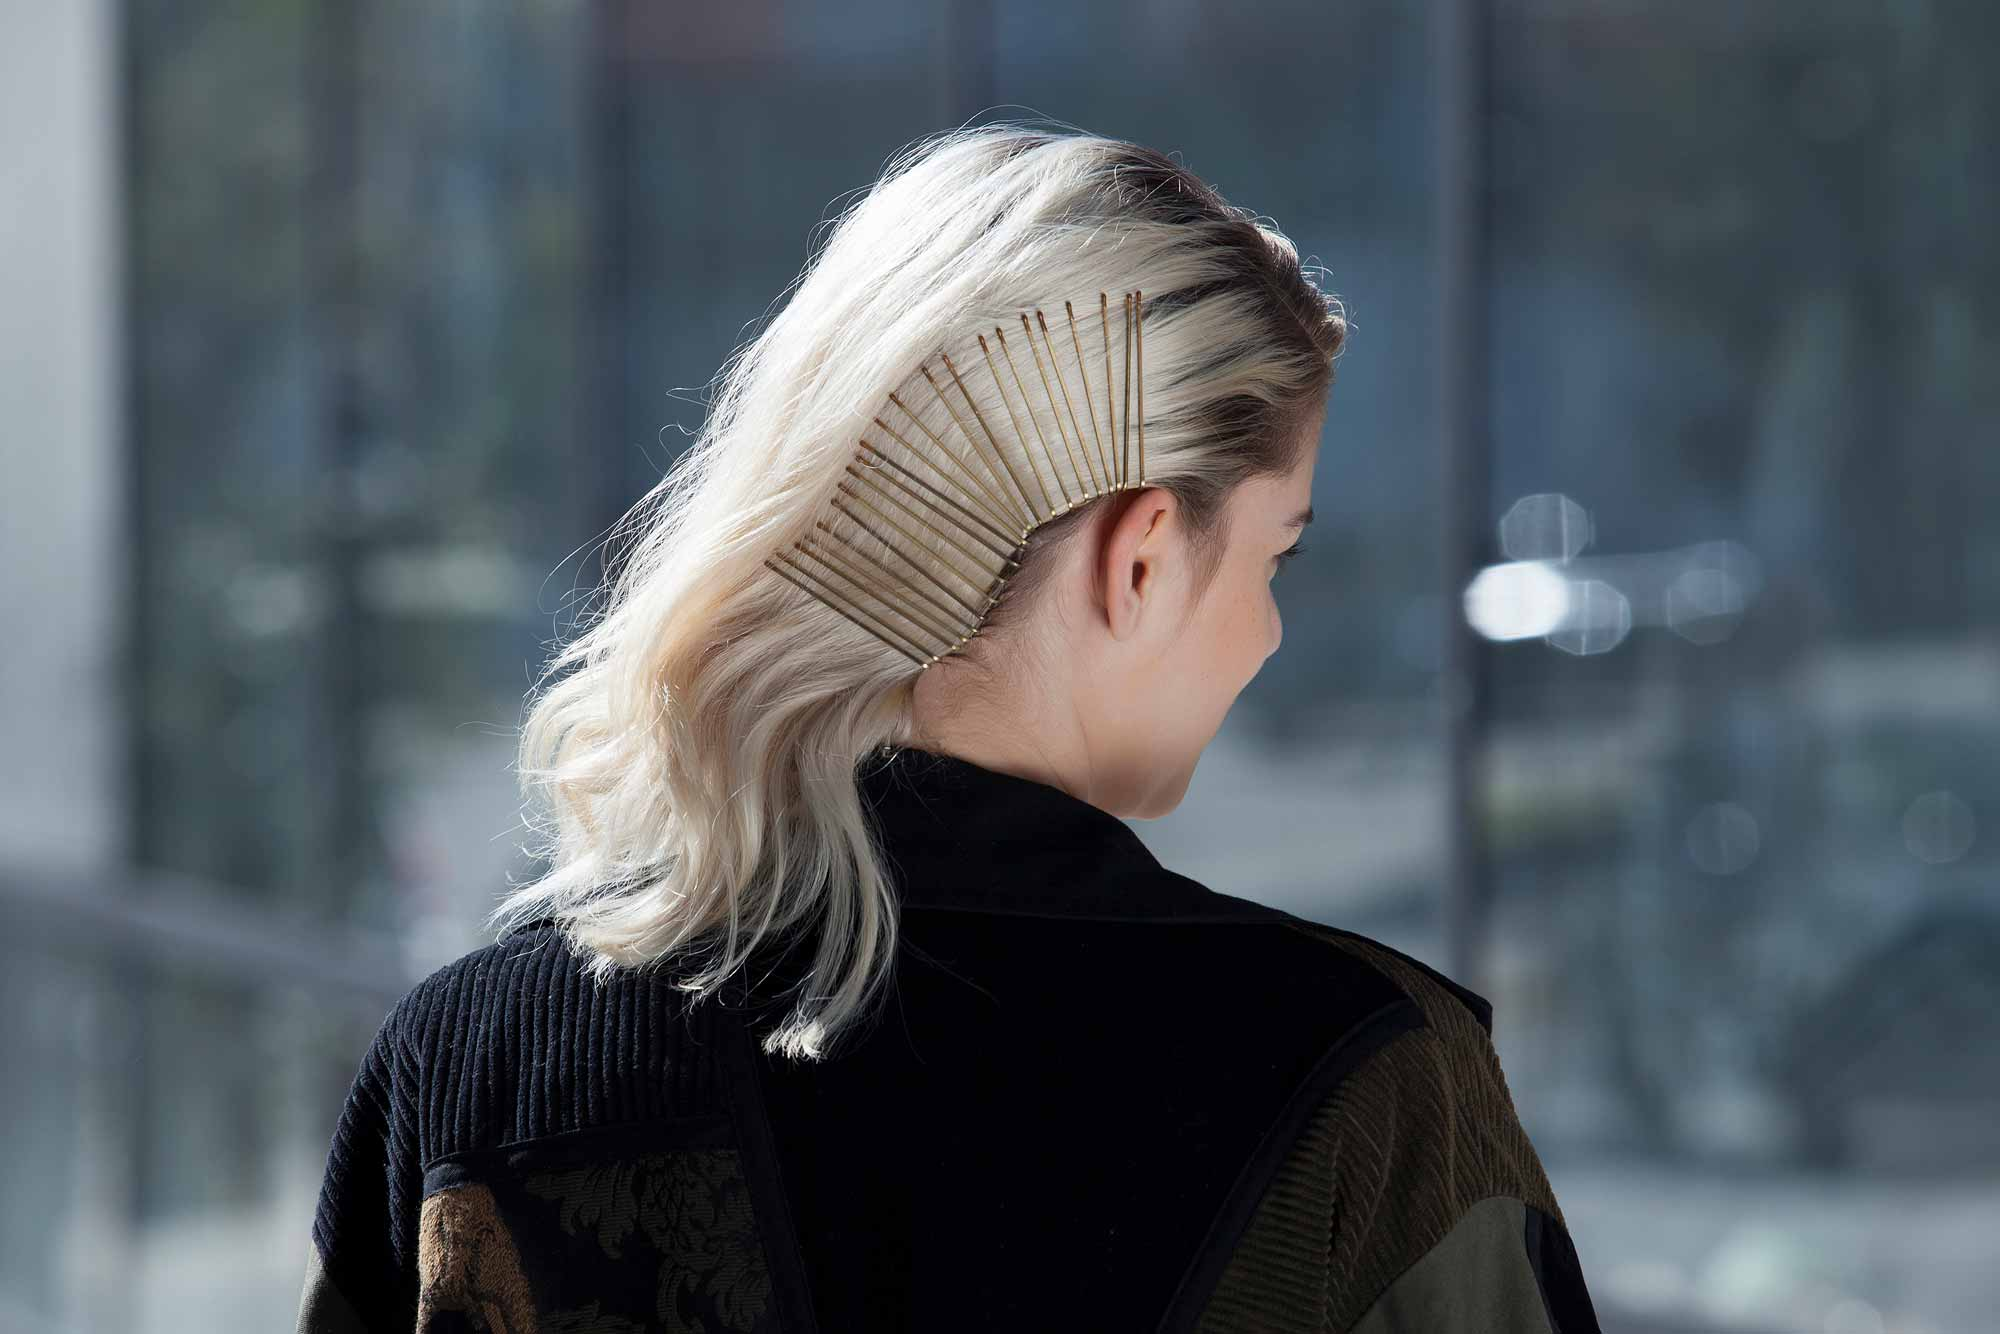 Bobby pin hairstyles: Closeup shot of a woman with side-swept bleach blonde hair styled with bobby pins